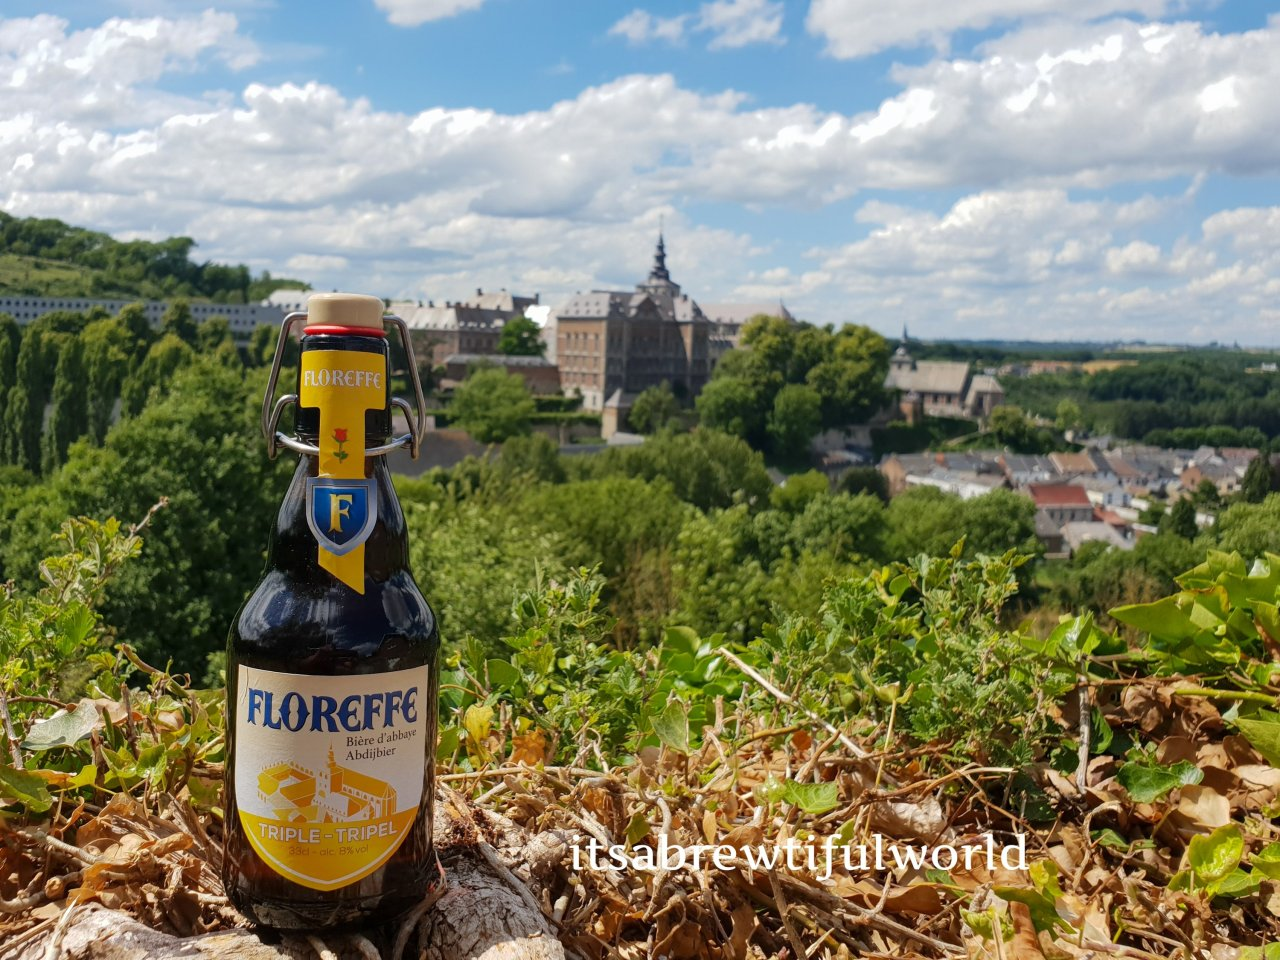 Hike the Brewtifulworld: Floreffe